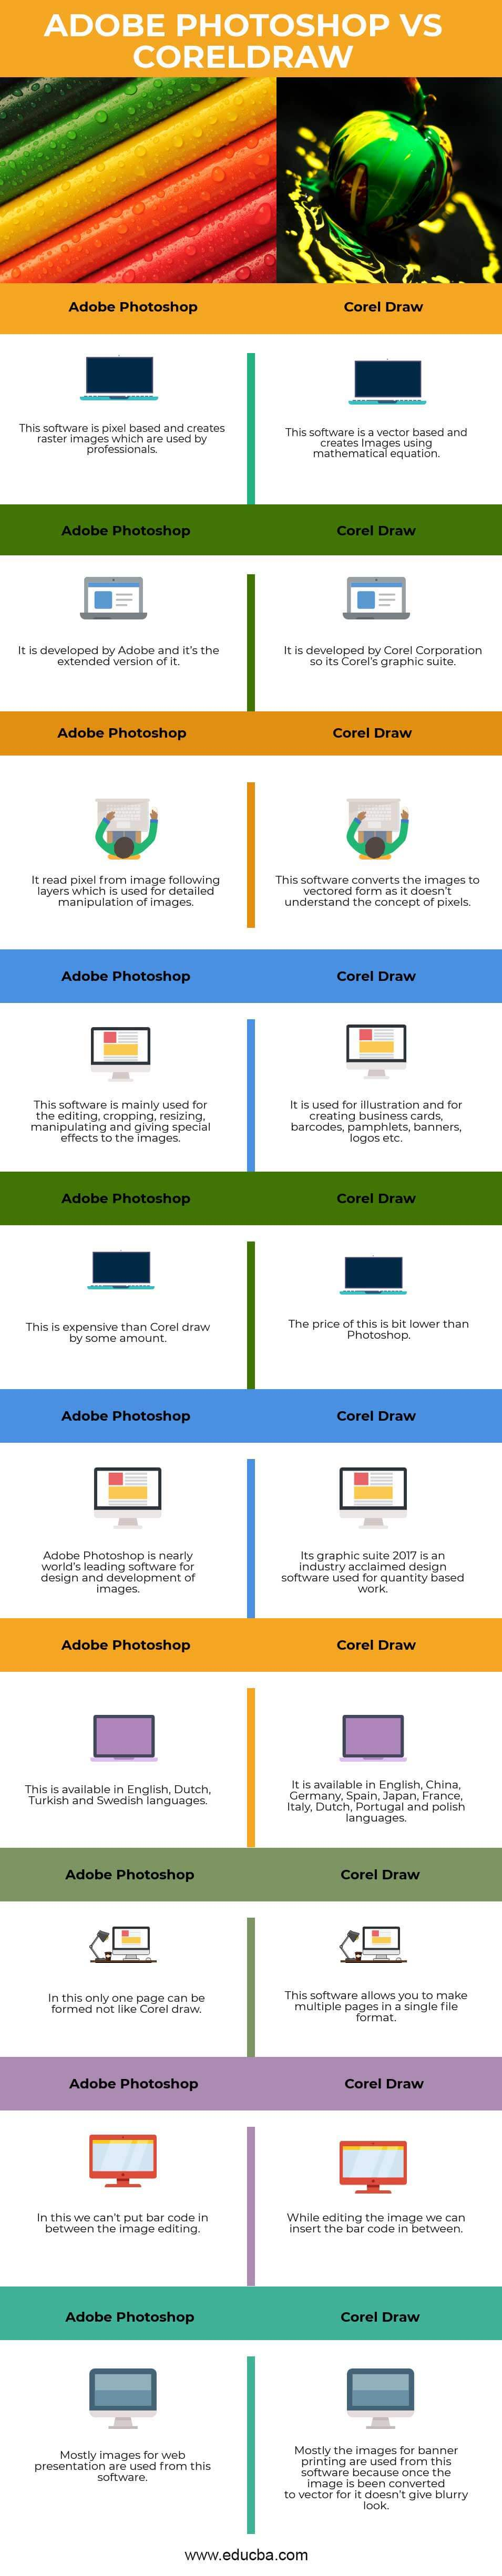 Adobe Photoshop vs CorelDraw | Learn The Top 10 Useful